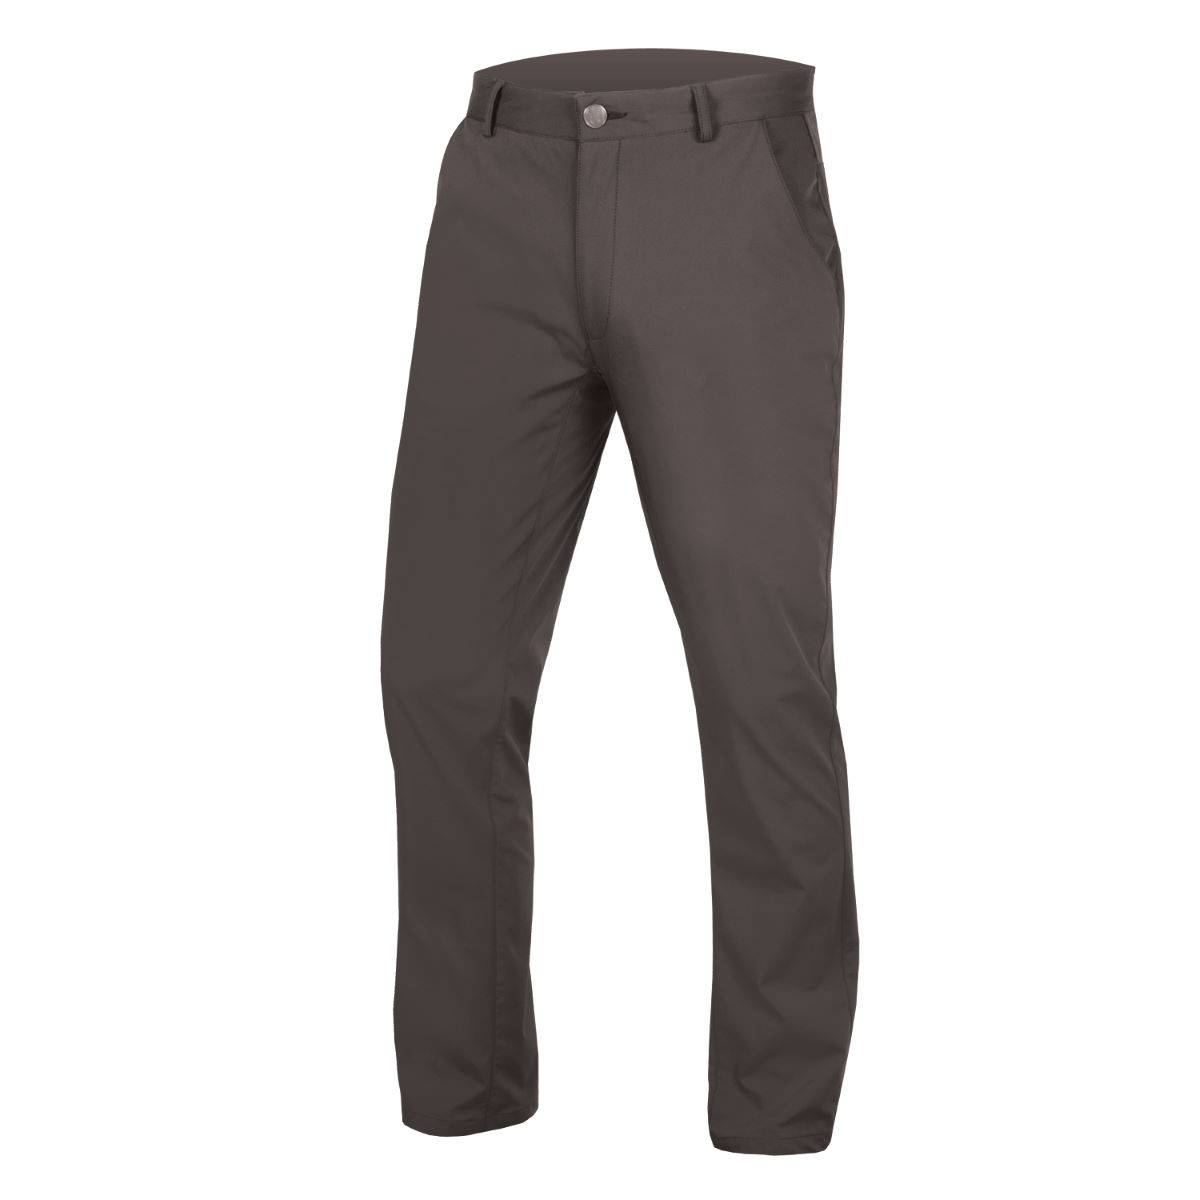 Endura Urban Softshell Pant - Small Grey | Casual Pants